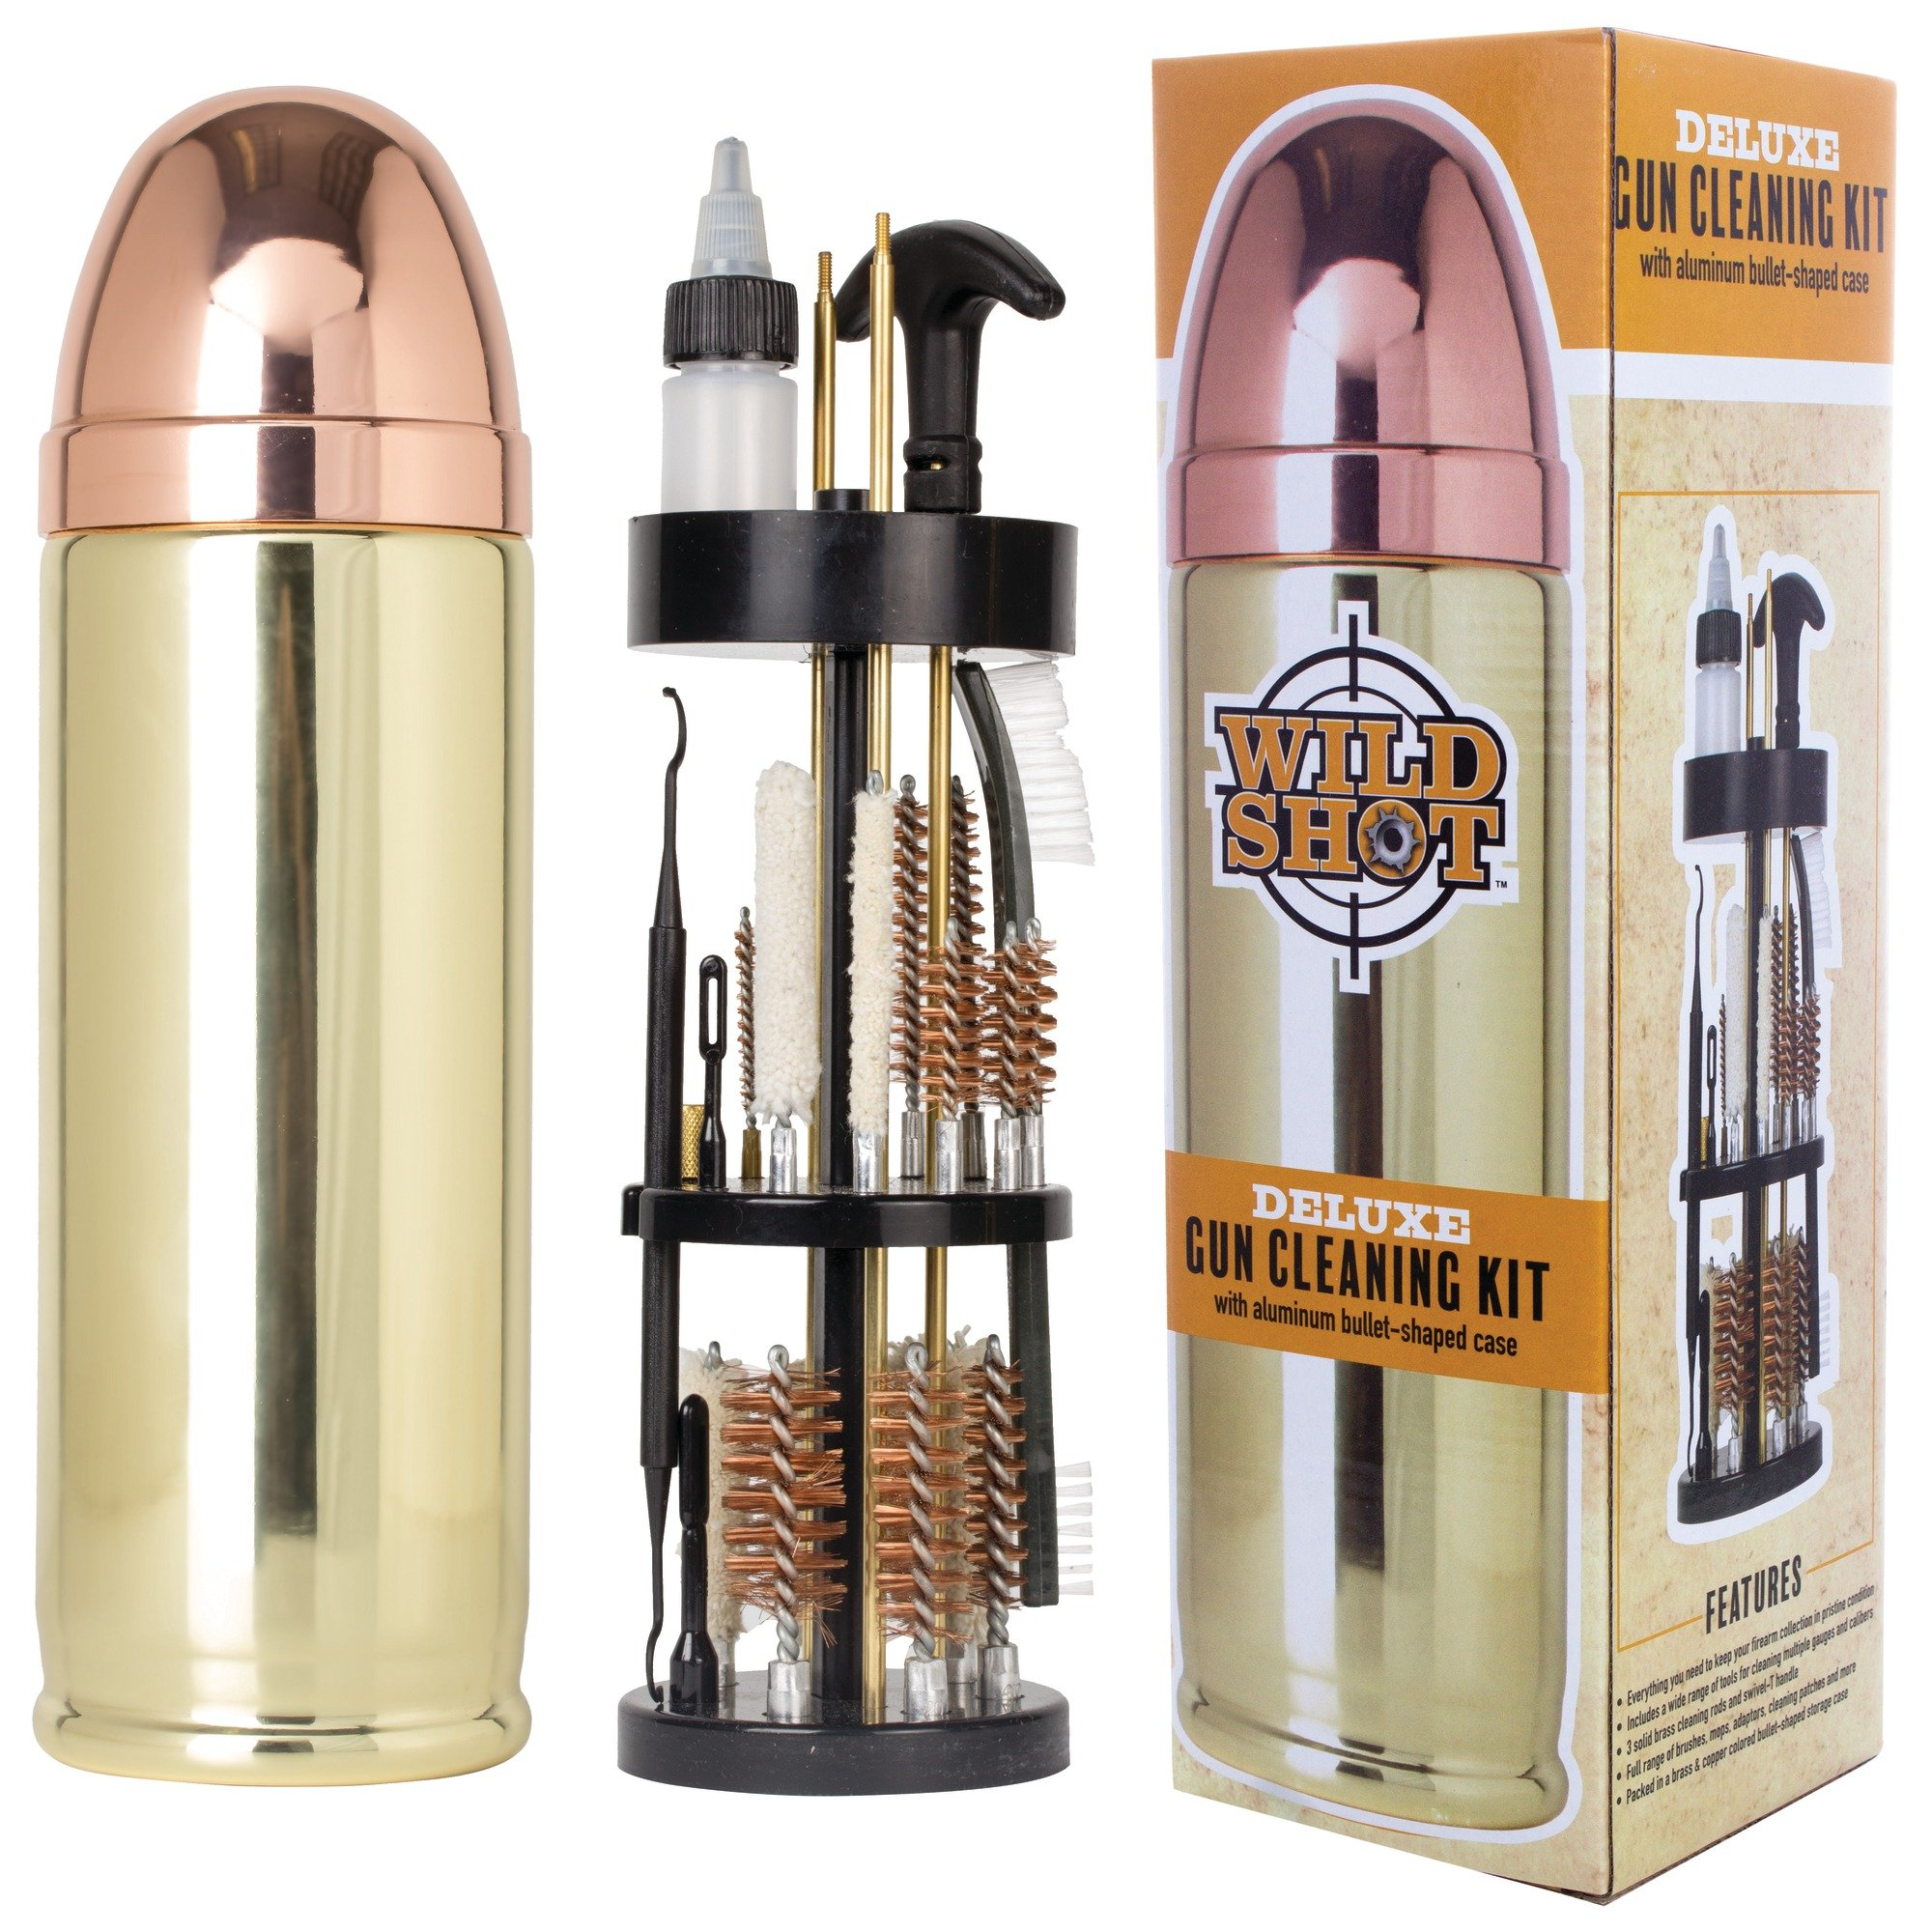 Wild Shot Deluxe Gun Cleaning Kit with Aluminum Bullet-Shaped Storage Case, Cleaning Tools to Effectively Maintain Handguns, Shotguns and Rifles by Maxam